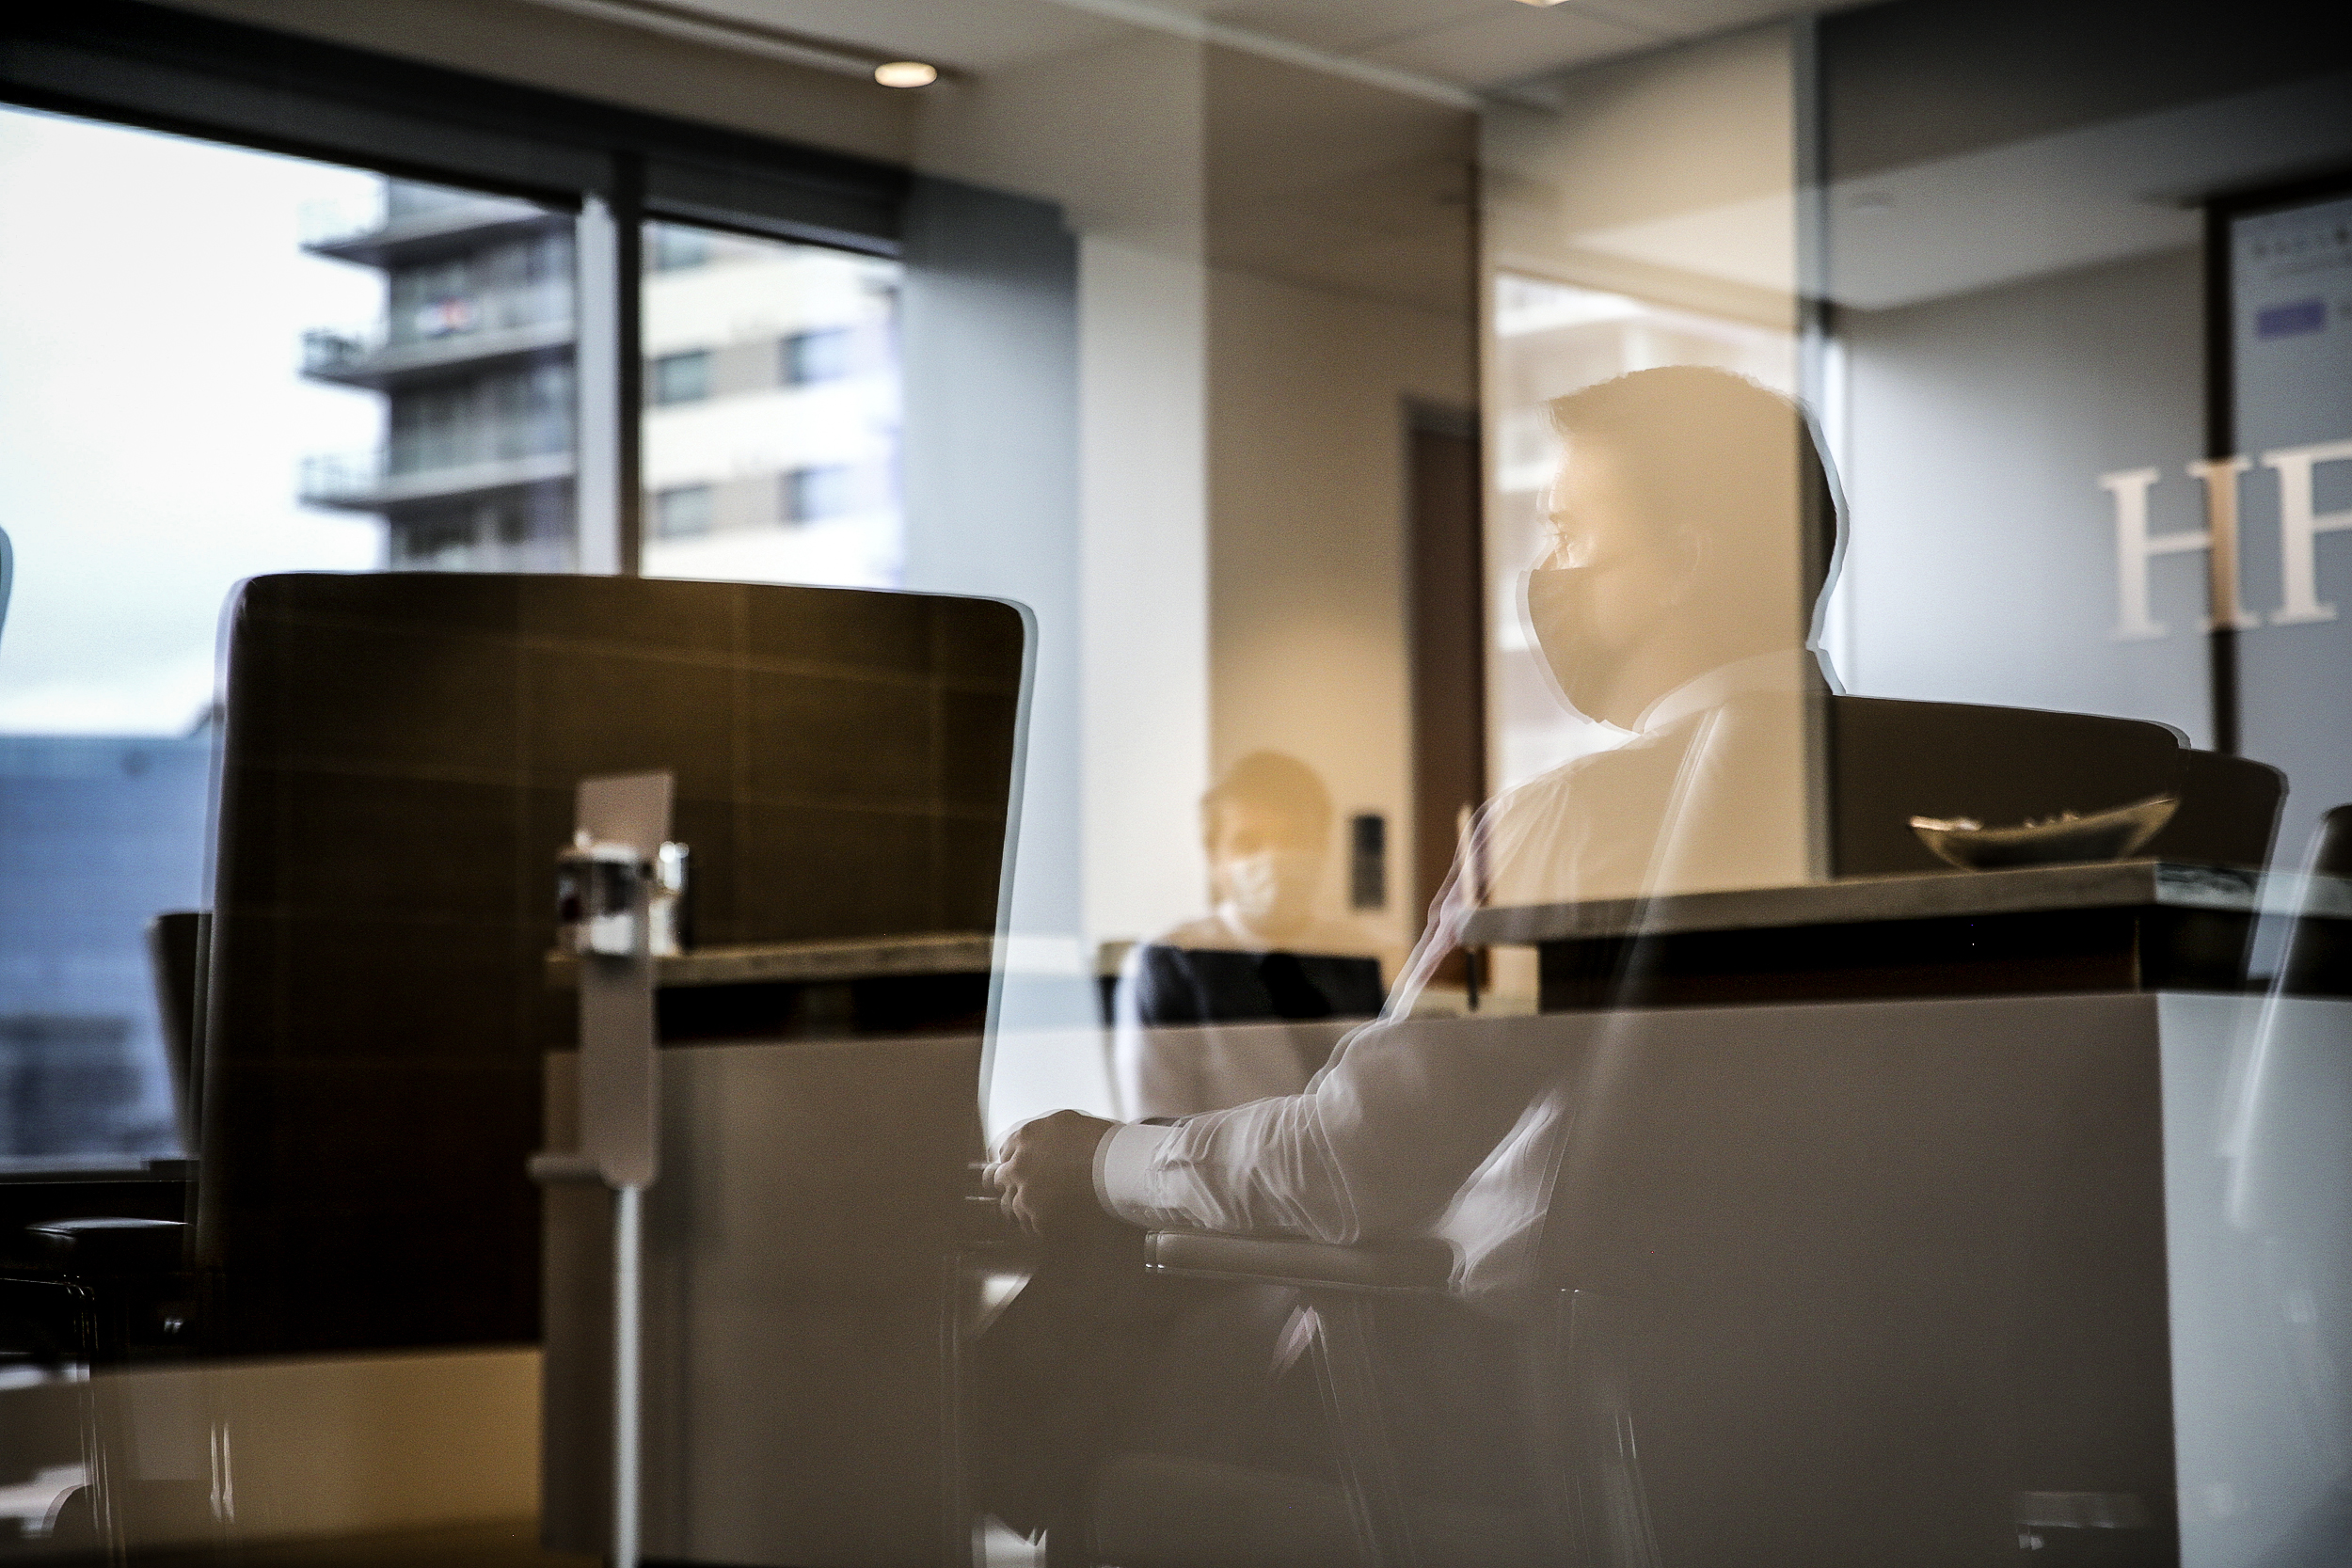 Remote workers could face cuts to pay, visibility